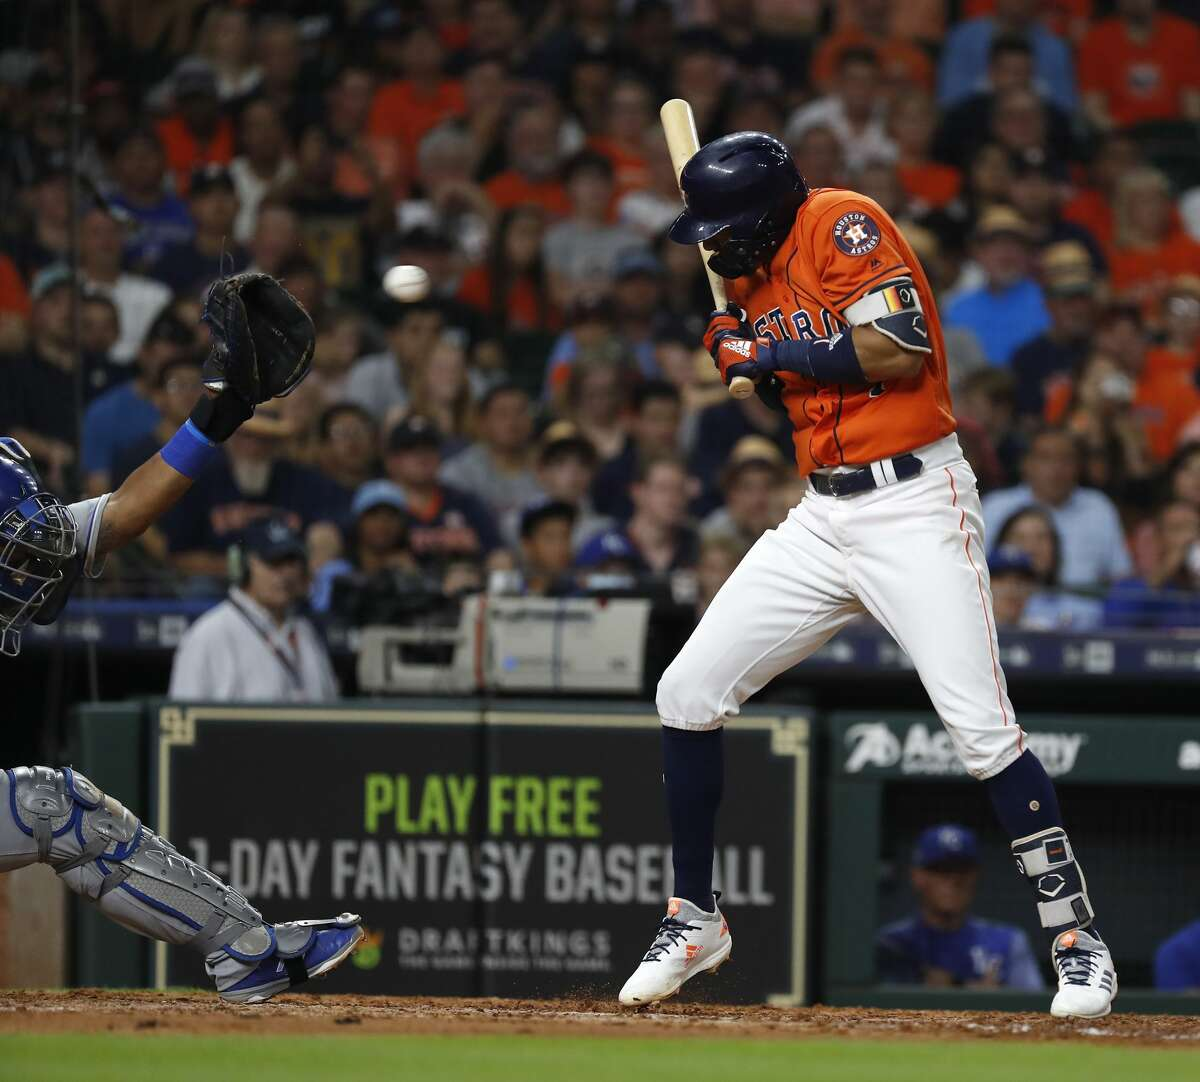 Houston Astros Carlos Correa (1) jumps back from a pitch inside from Kansas City Royals starting pitcher Danny Duffy (41) during the sixth inning of an MLB baseball game at Minute Maid Park, Friday, June 22, 2018, in Houston. ( Karen Warren / Houston Chronicle )